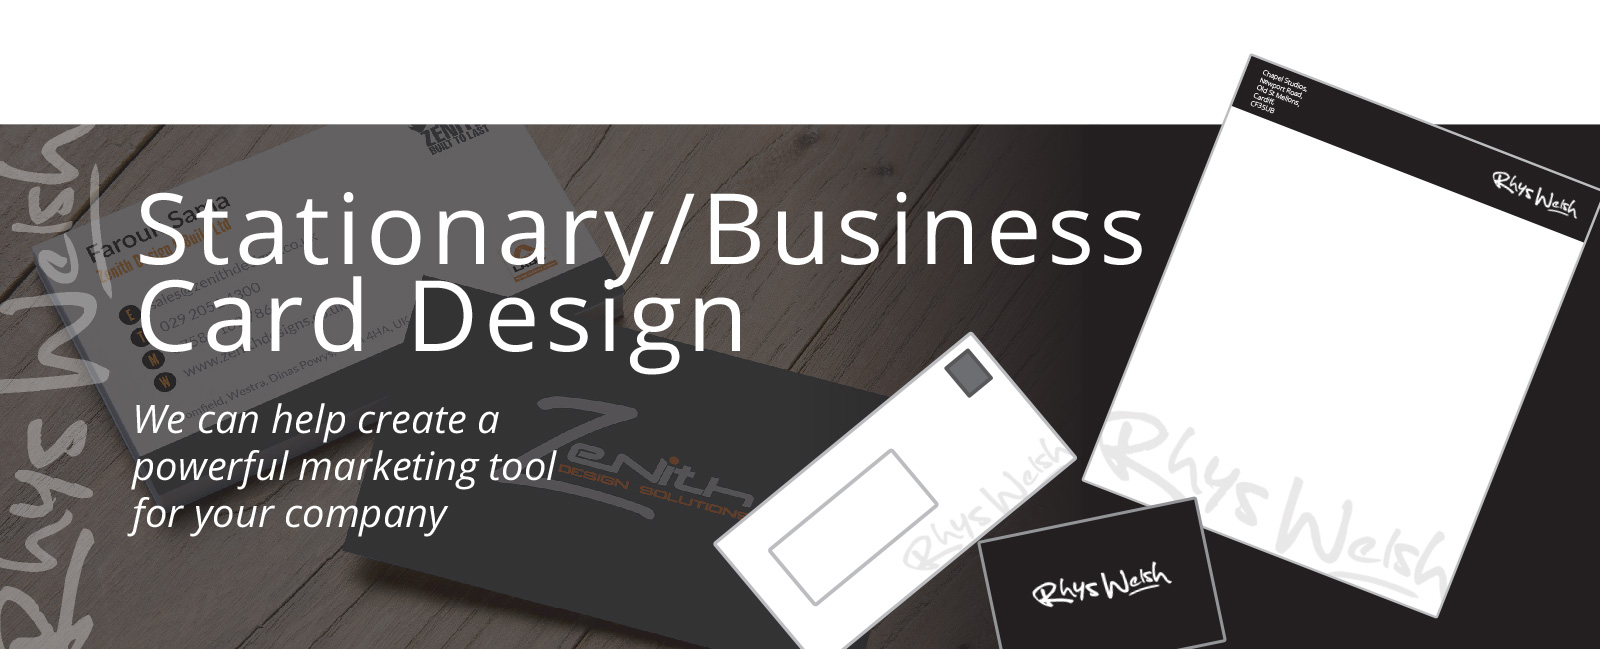 Stationary Business Card Design cardiff slide